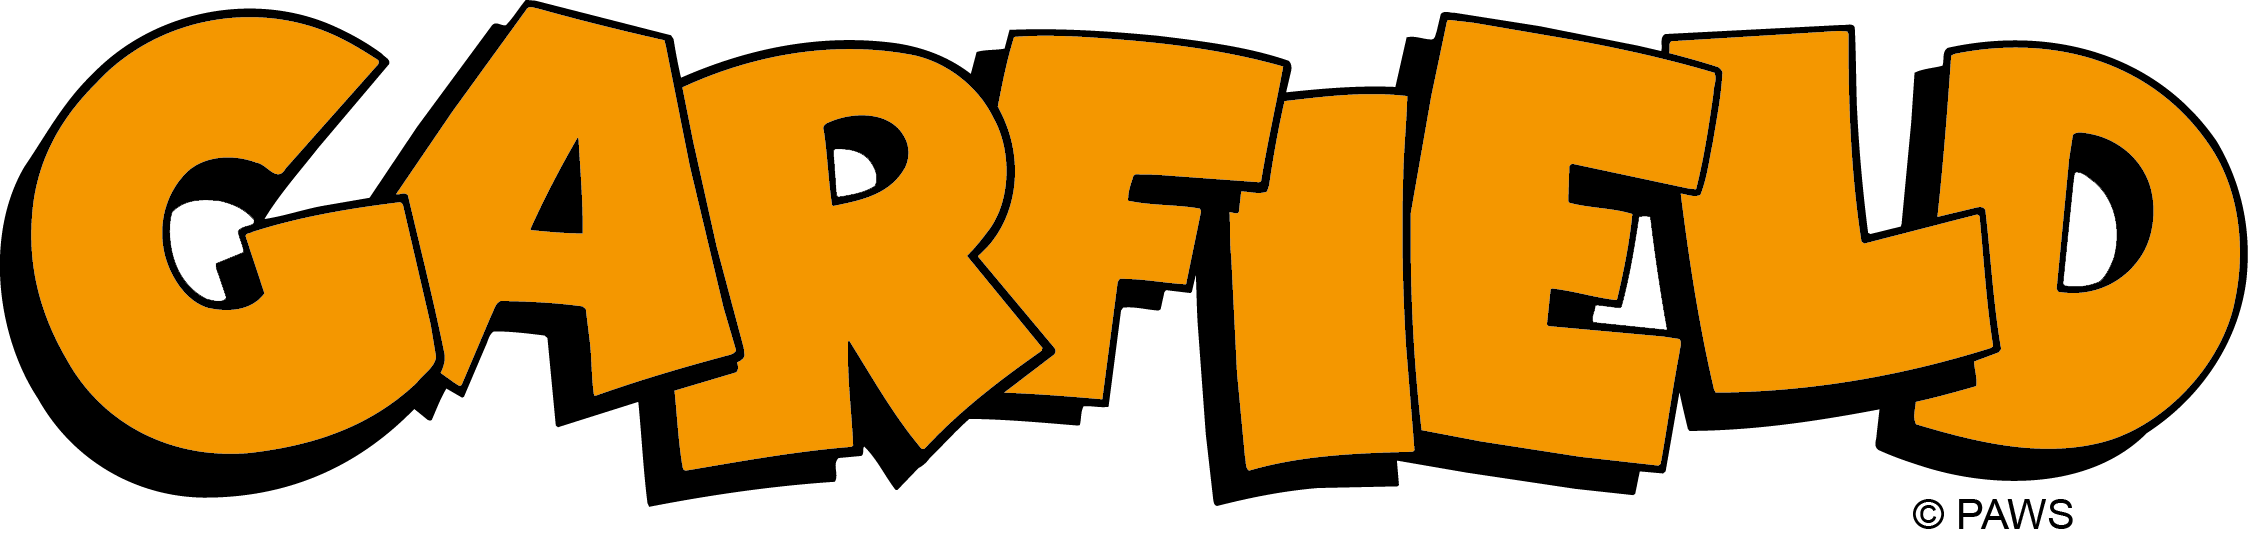 File:Garfield-Logo-Wallpaper.png